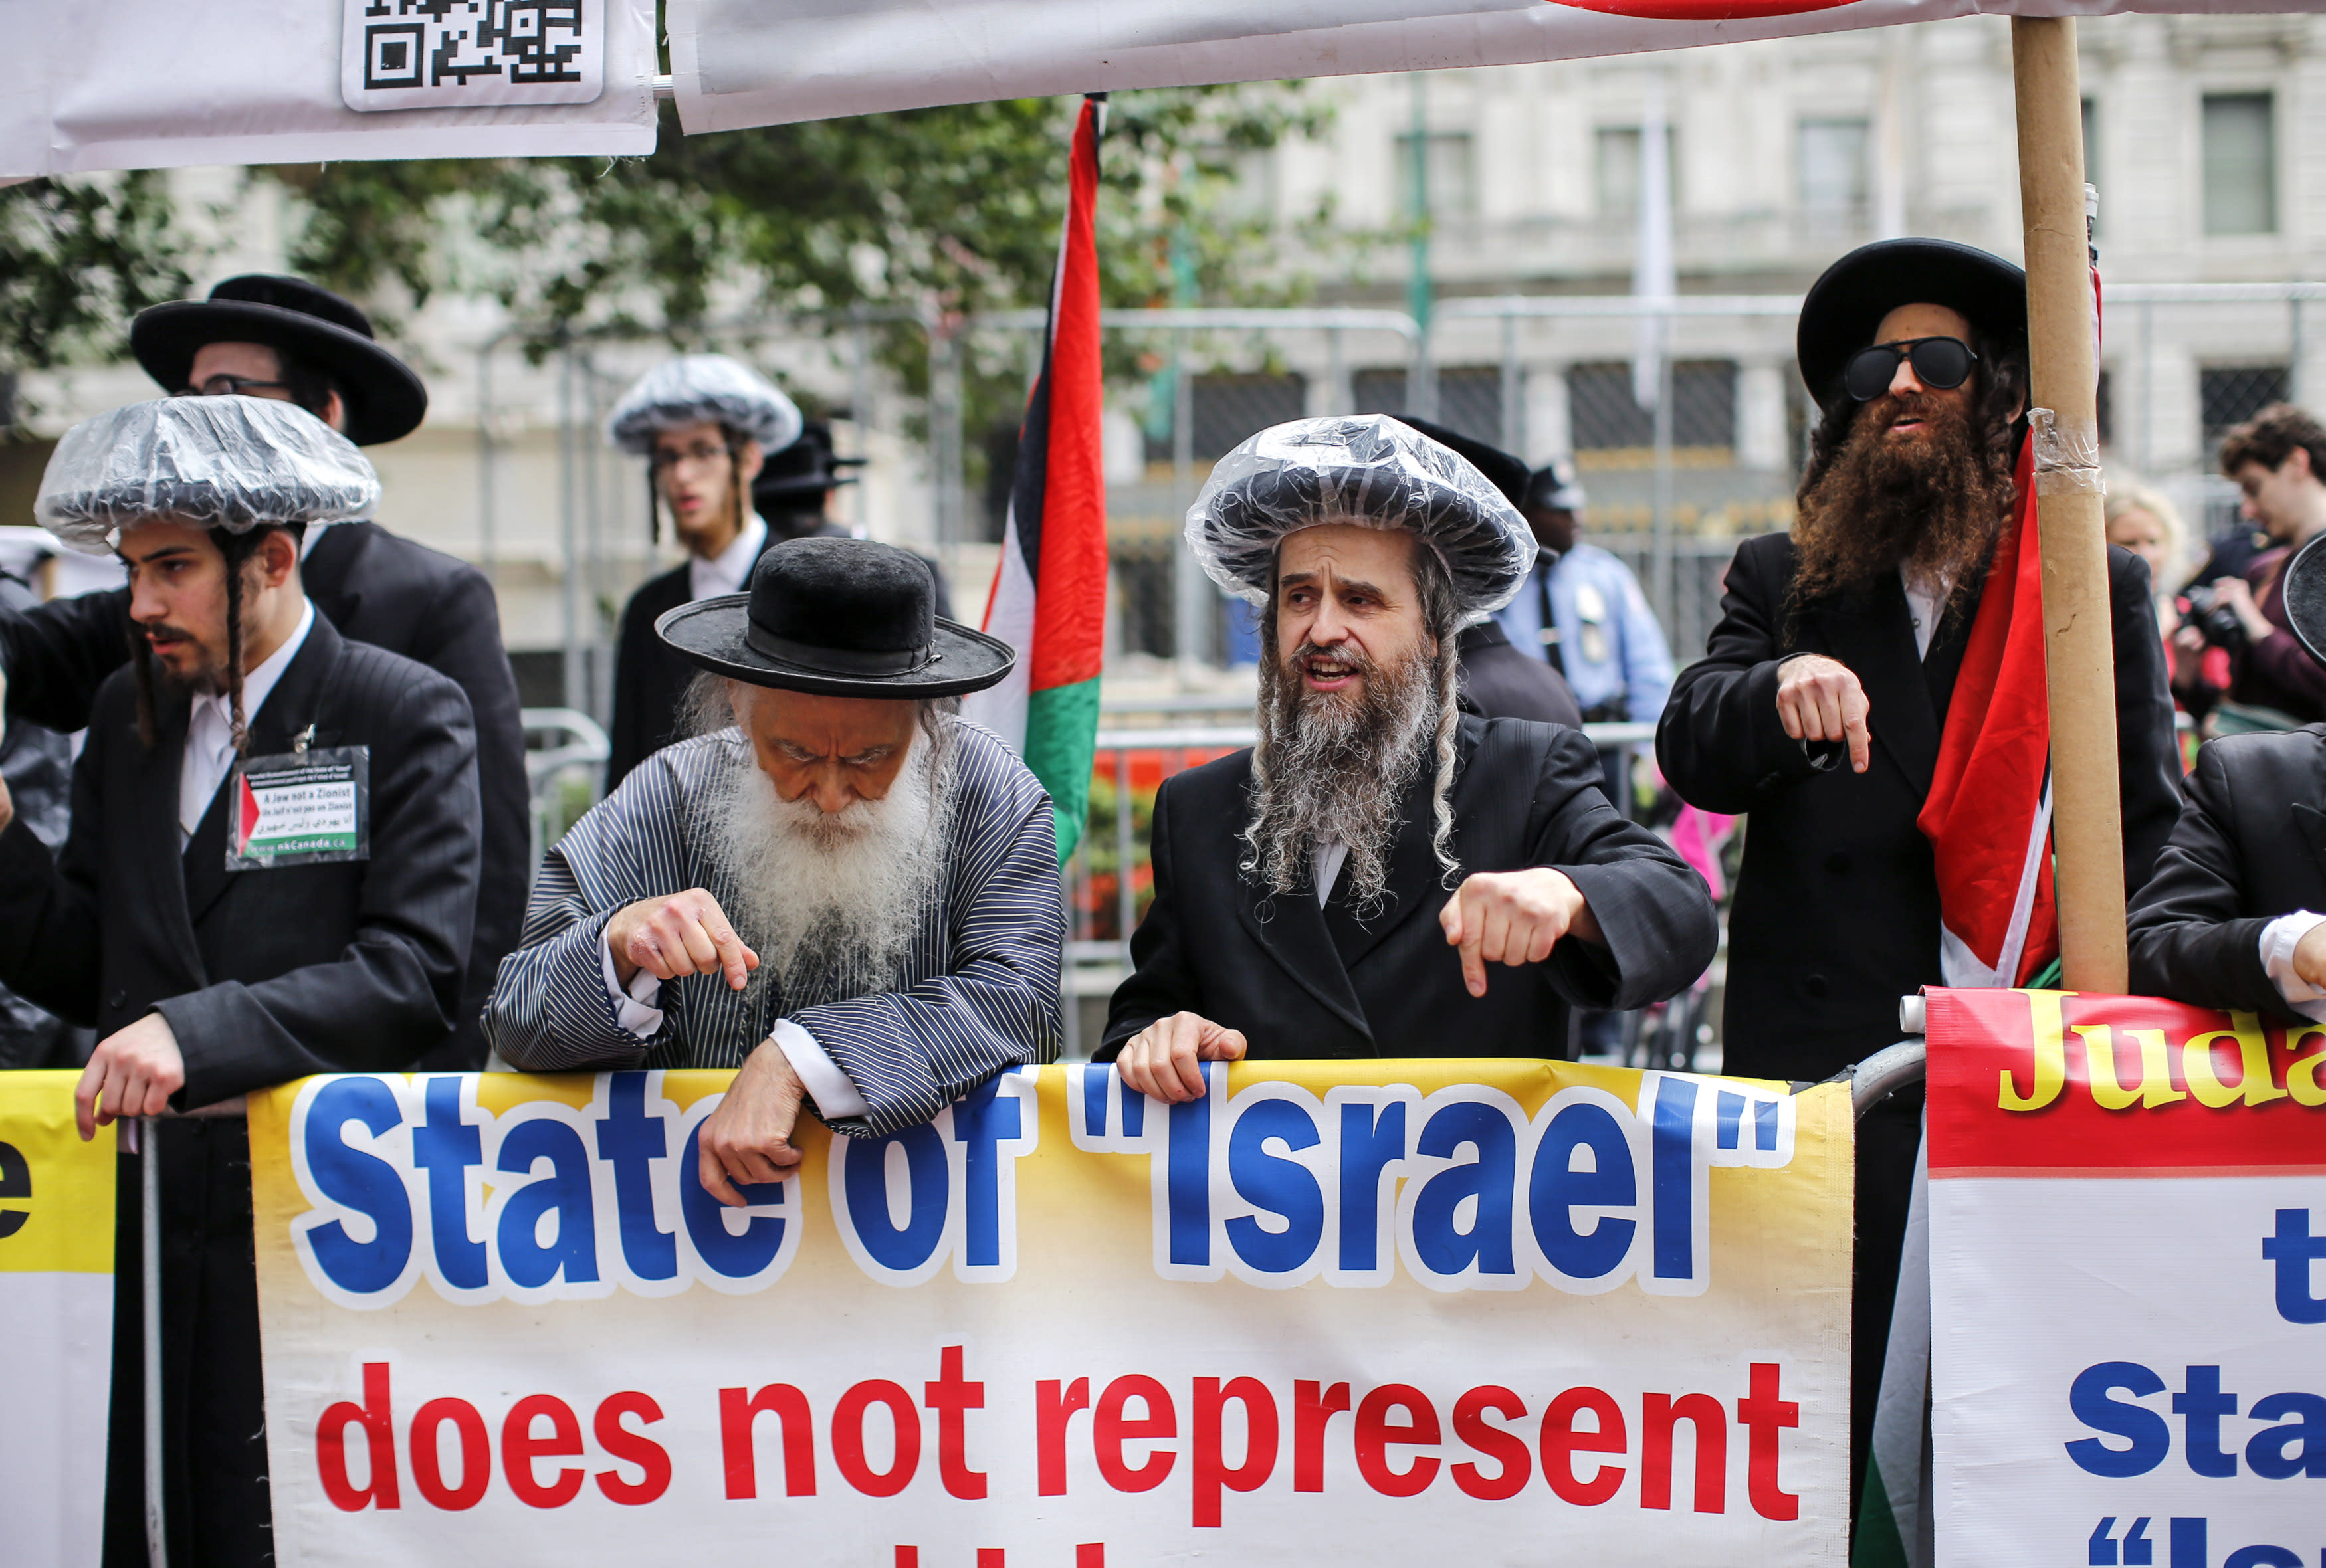 Anti-Israel protestors demonstrate near the annual Celebrate Israel Parade on June 3, 2018 in New York City. (Kena Betancur/Getty Images/AFP)